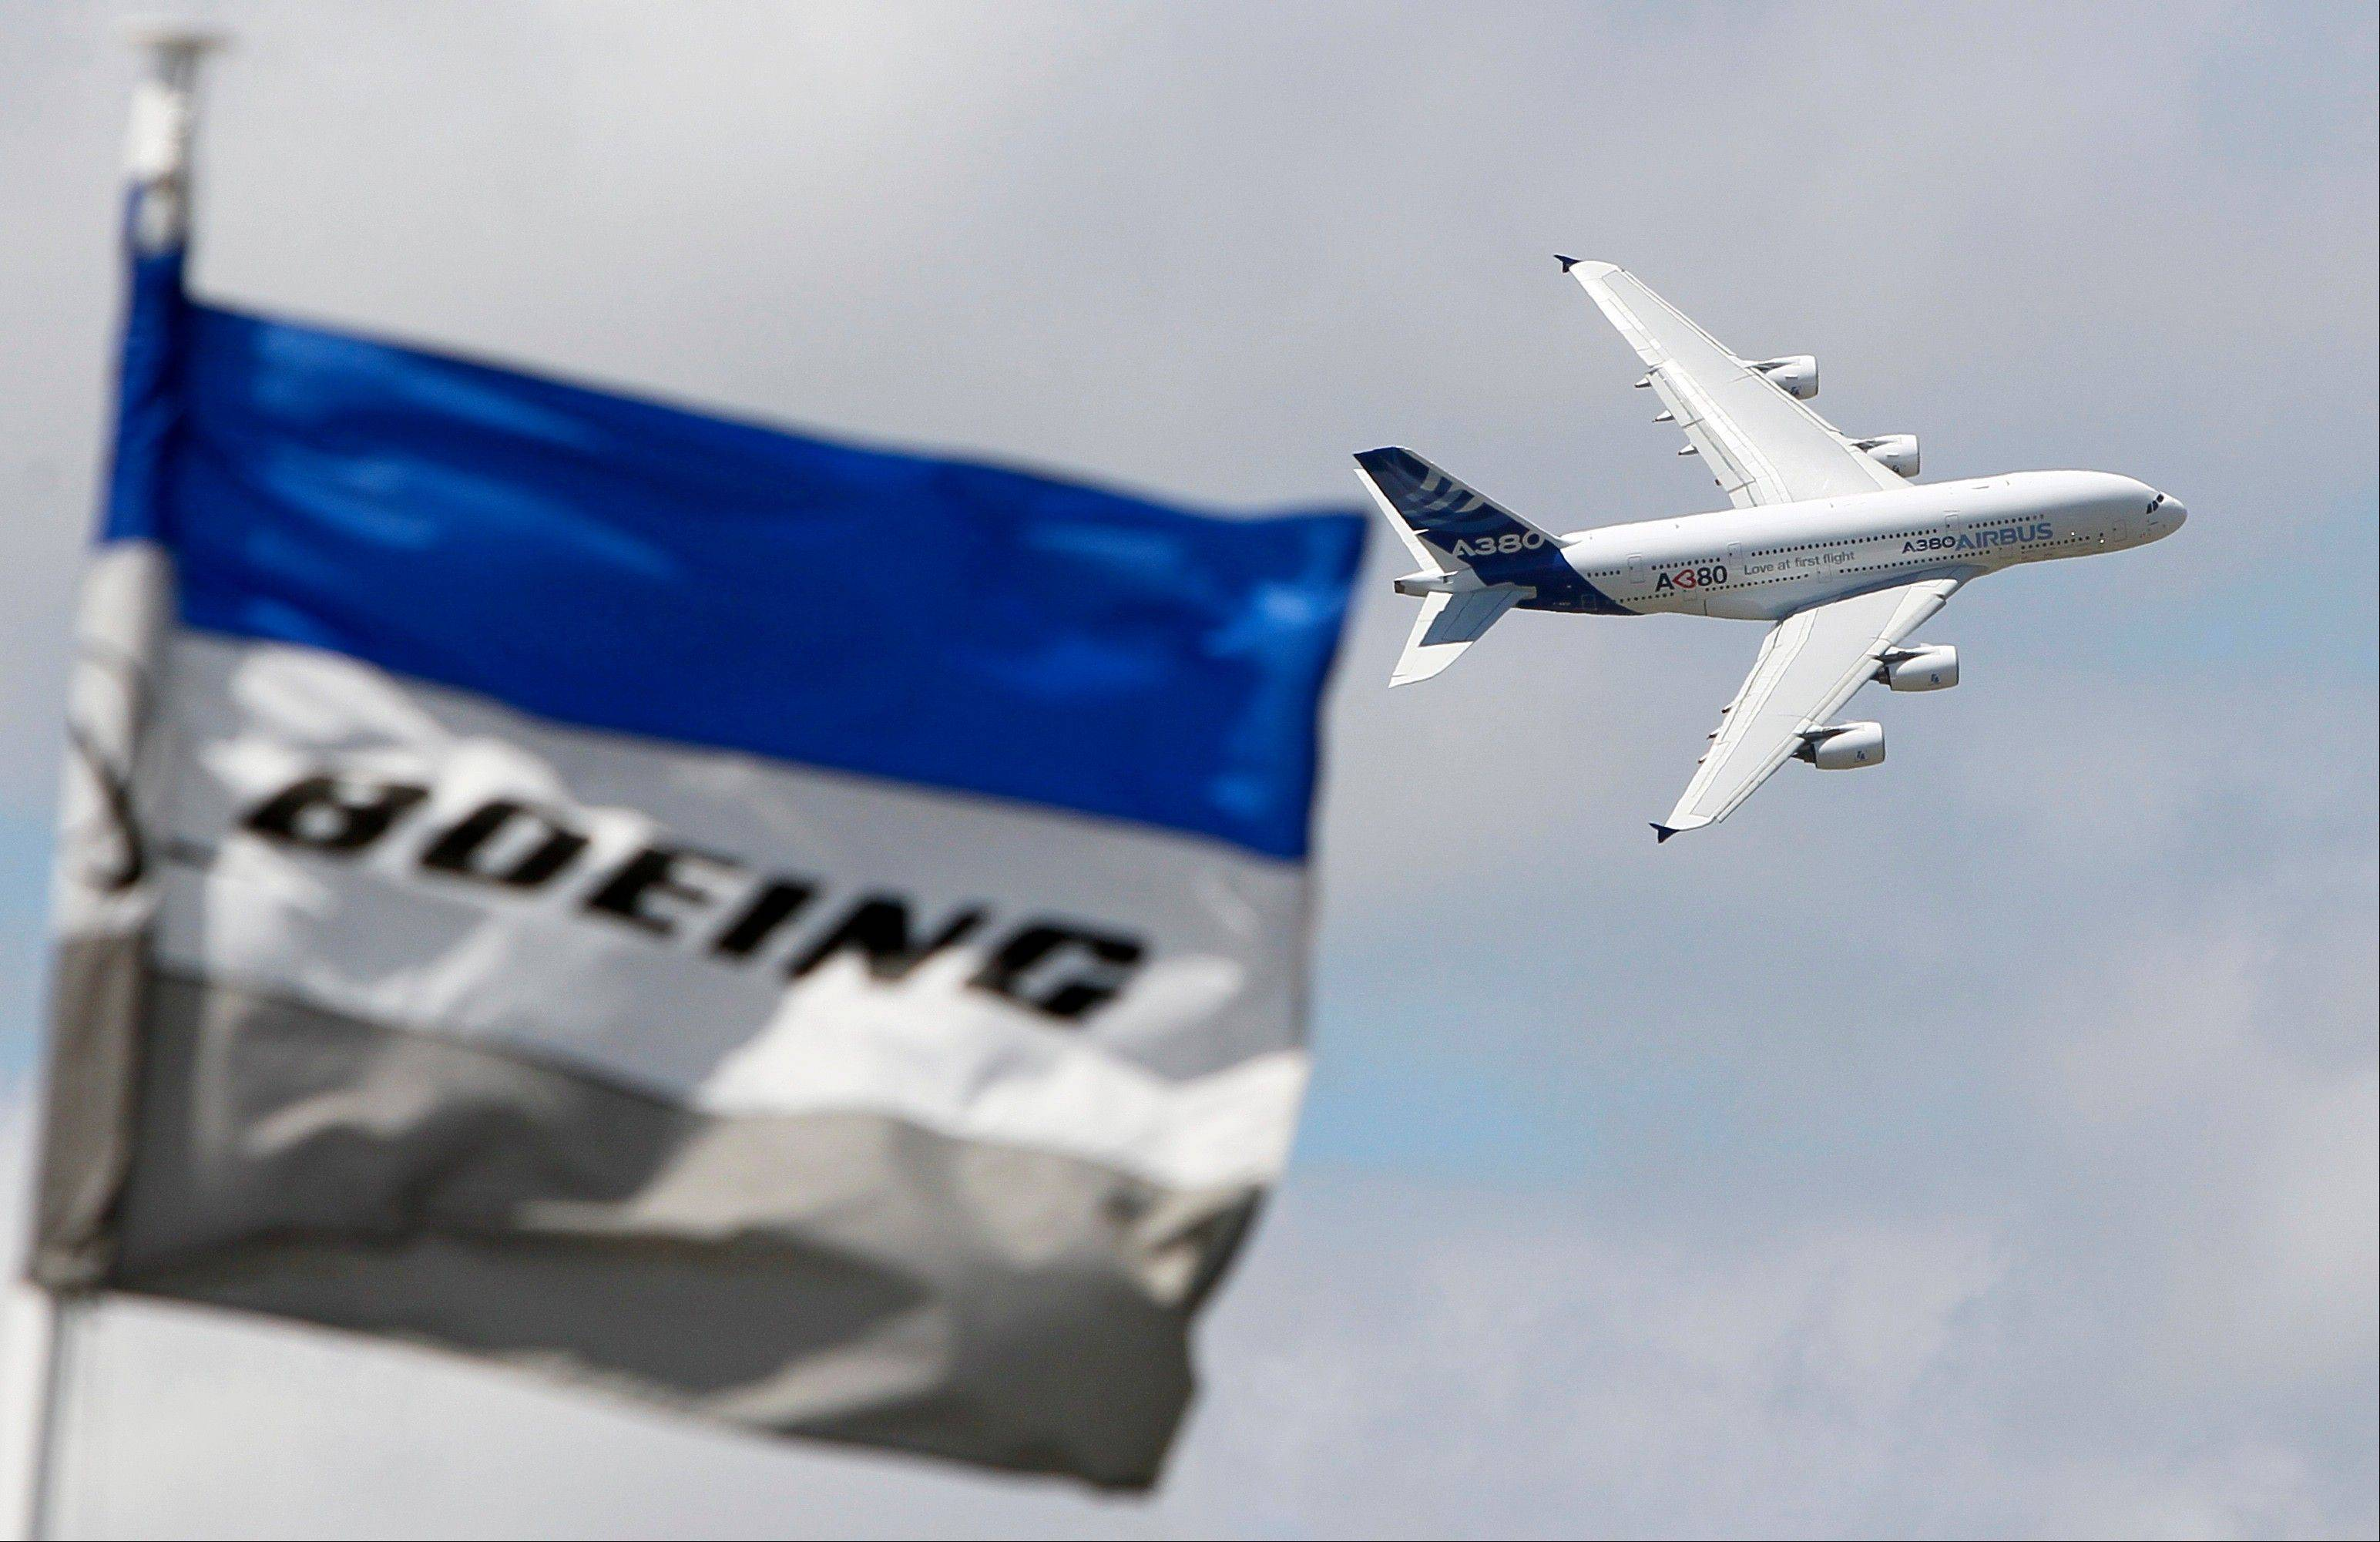 A Boeing flag flutters as an Airbus A380 flies past during a demonstration flight at the 49th Paris Air Show at Le Bourget airport, east of Paris.